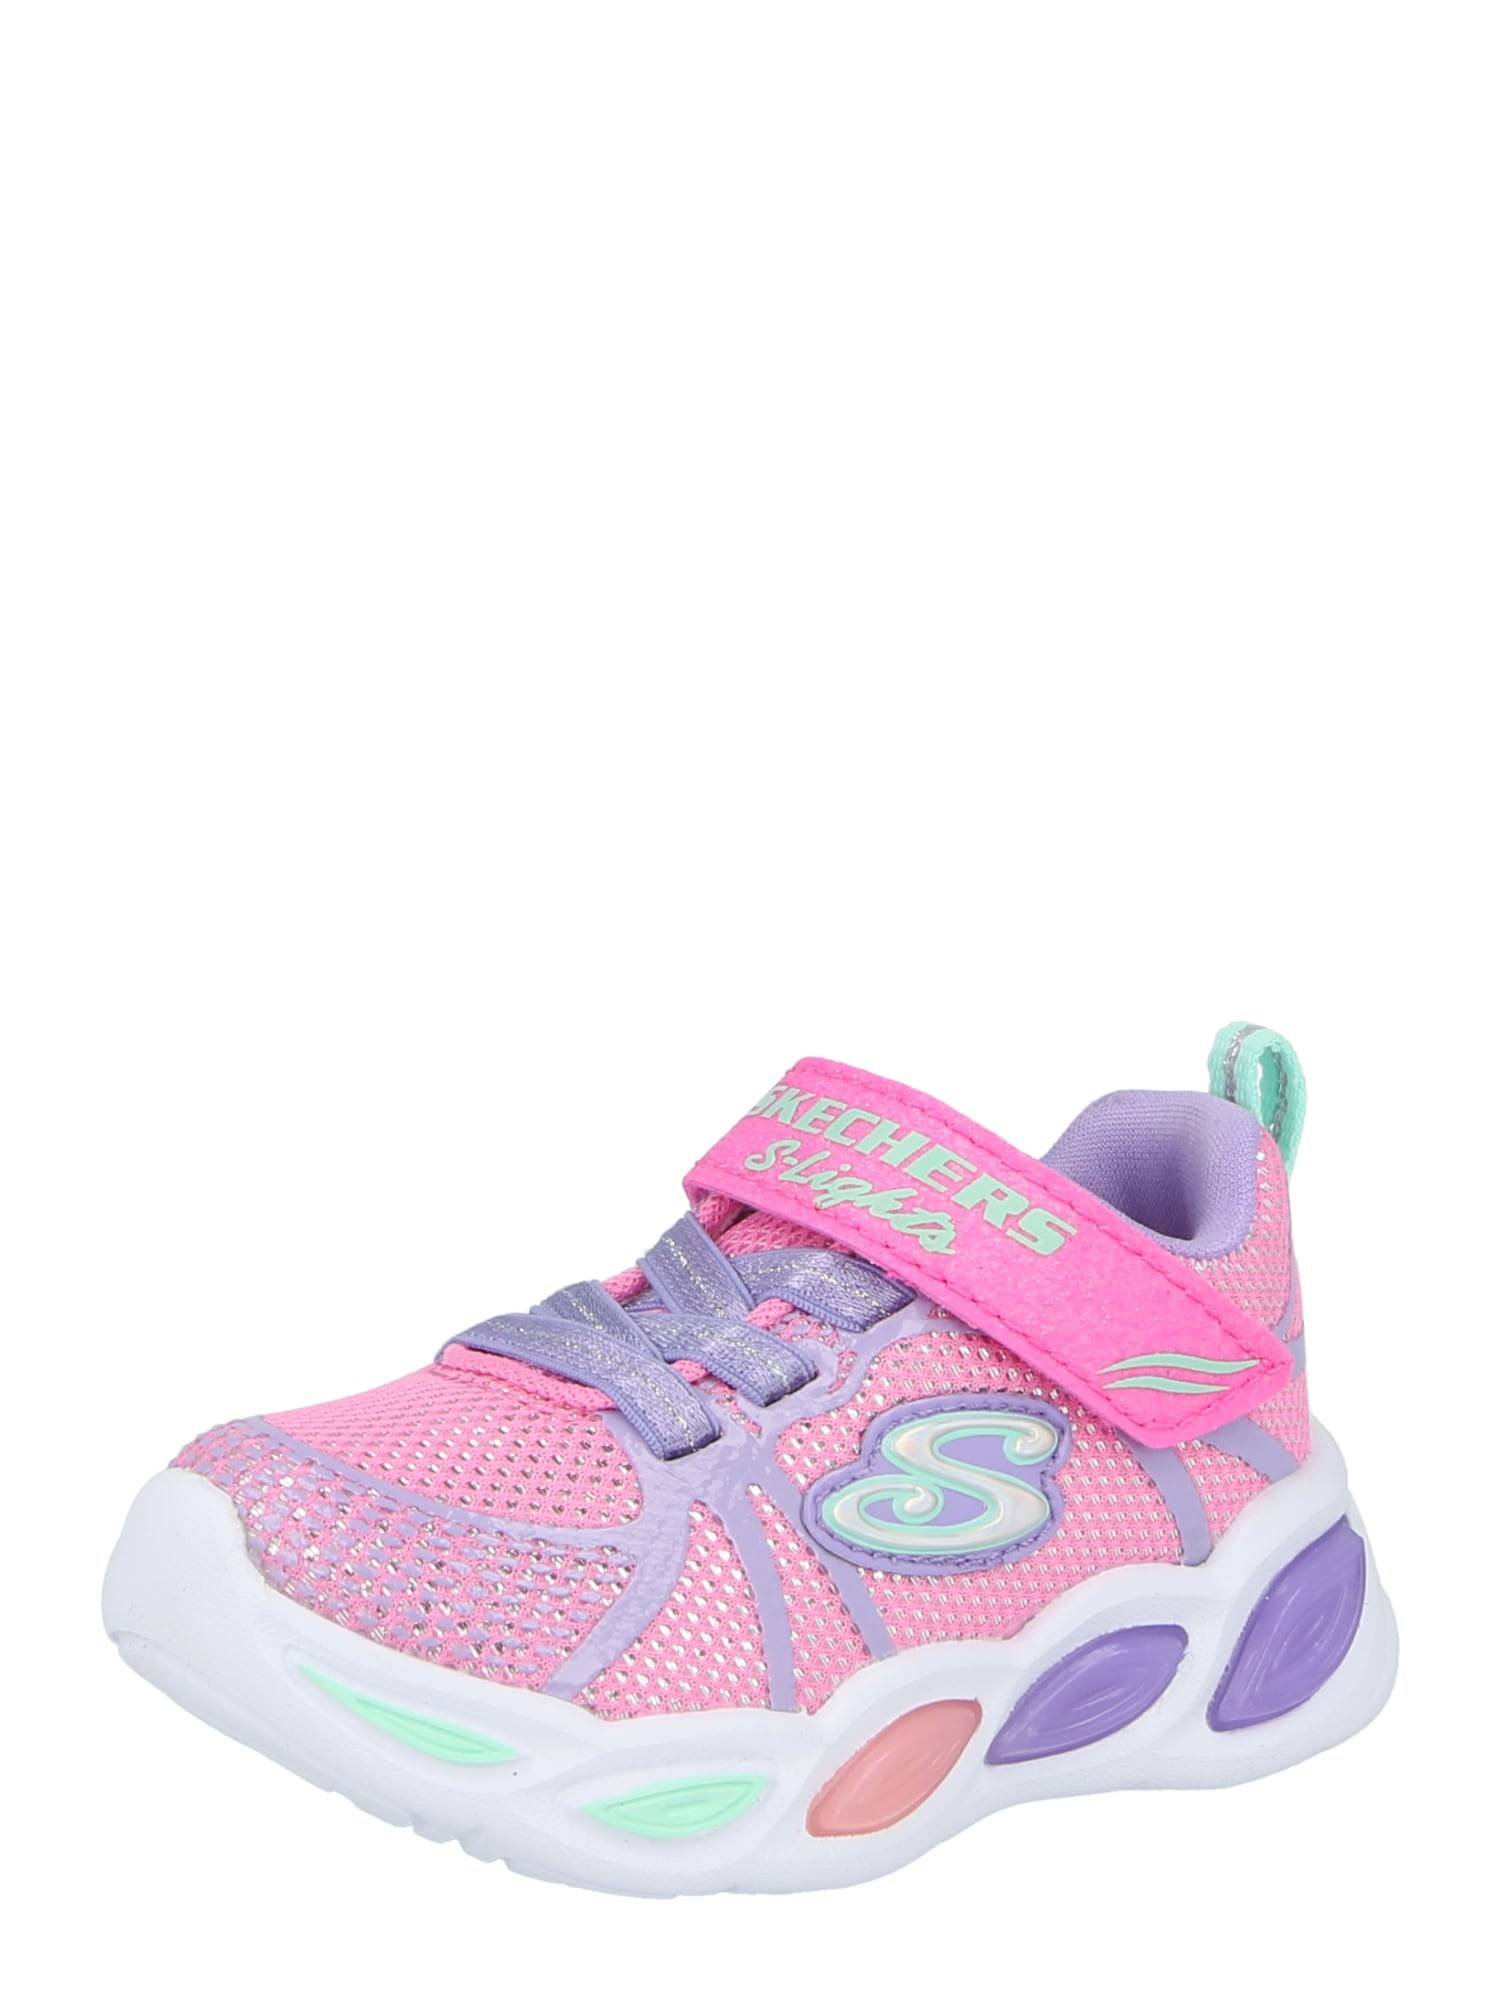 SKECHERS Baskets  - Rose - Taille: 26 - girl